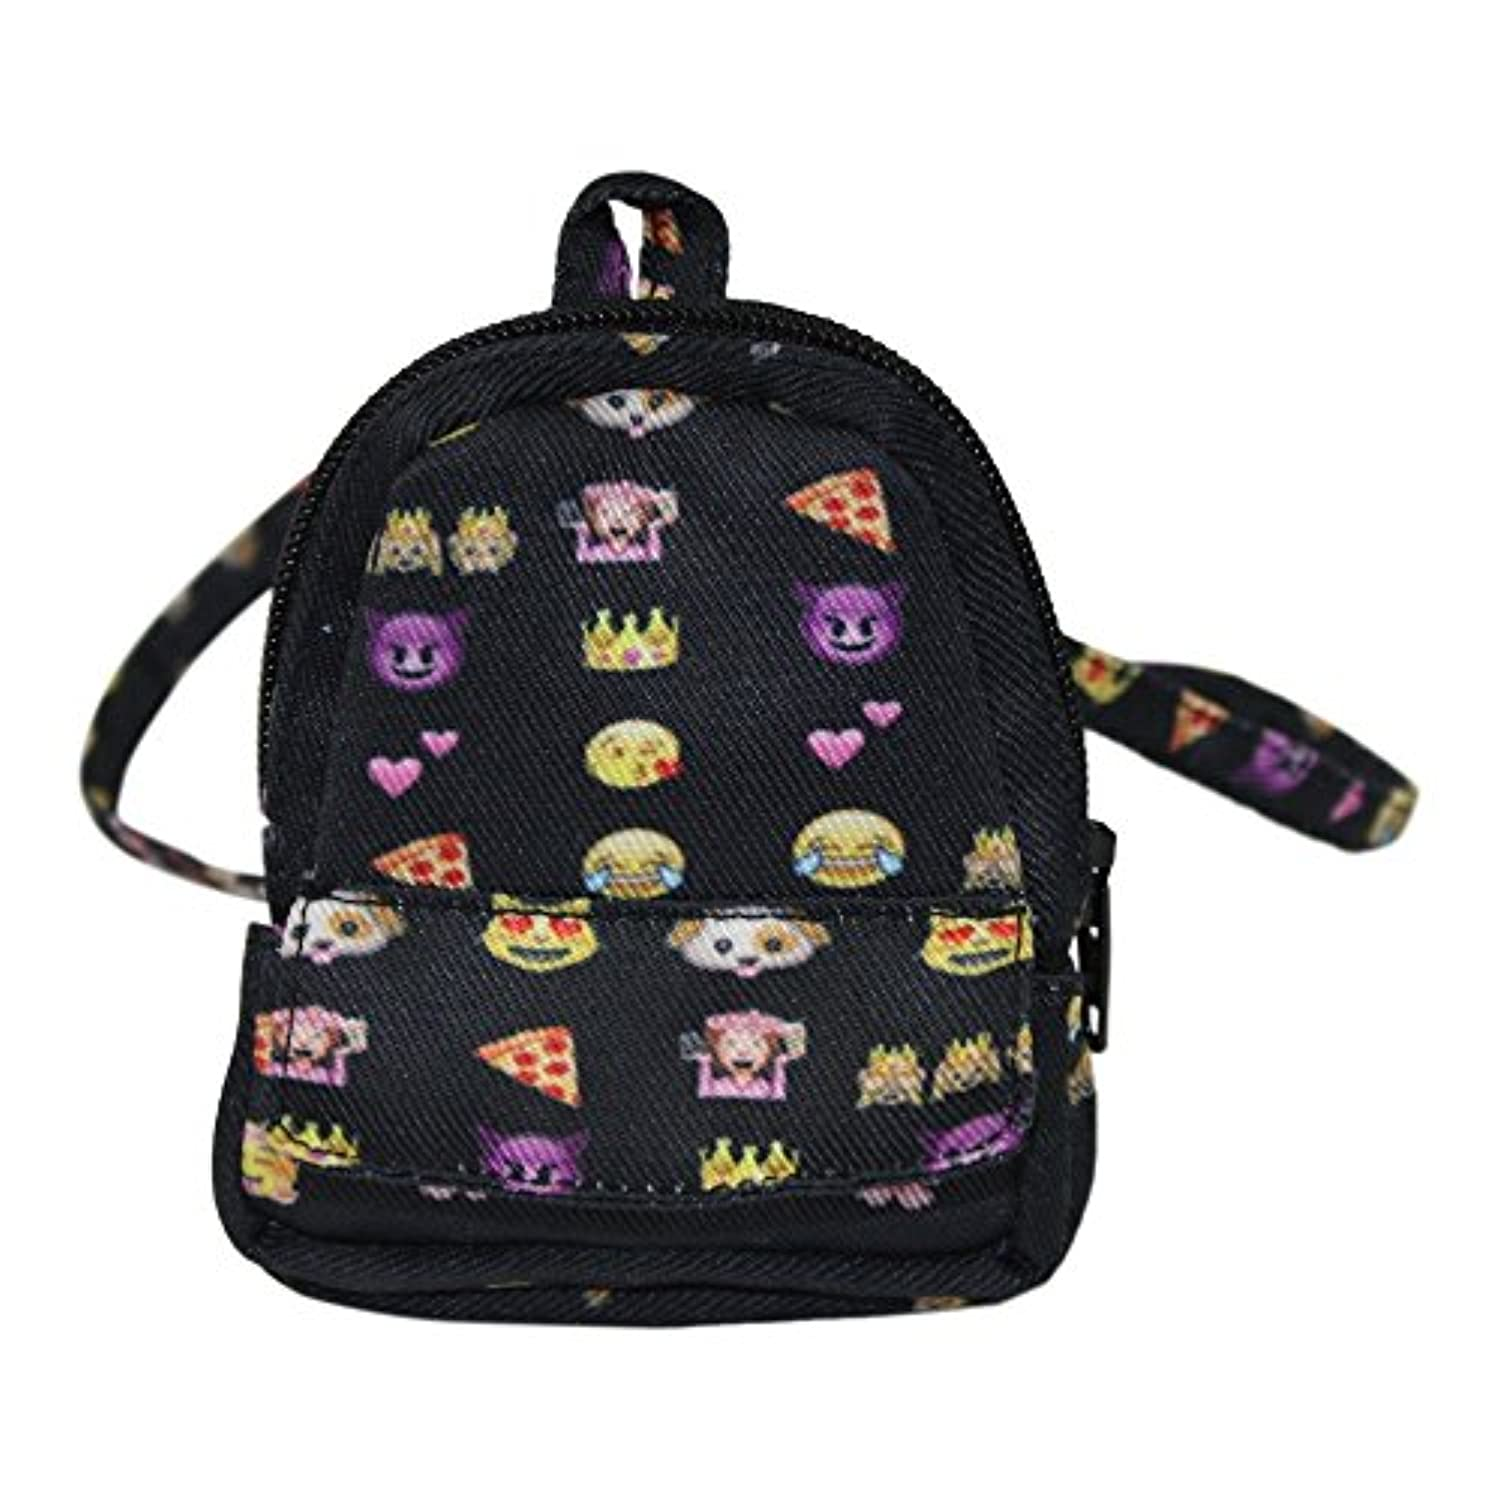 Ari and Friends Fits American Girl 46cm Dolls - Emoji Fun Zippered BACKPACK - 46cm Doll accessories - Designed In USA to Fit 46cm dolls - Great for your 46cm doll on the go